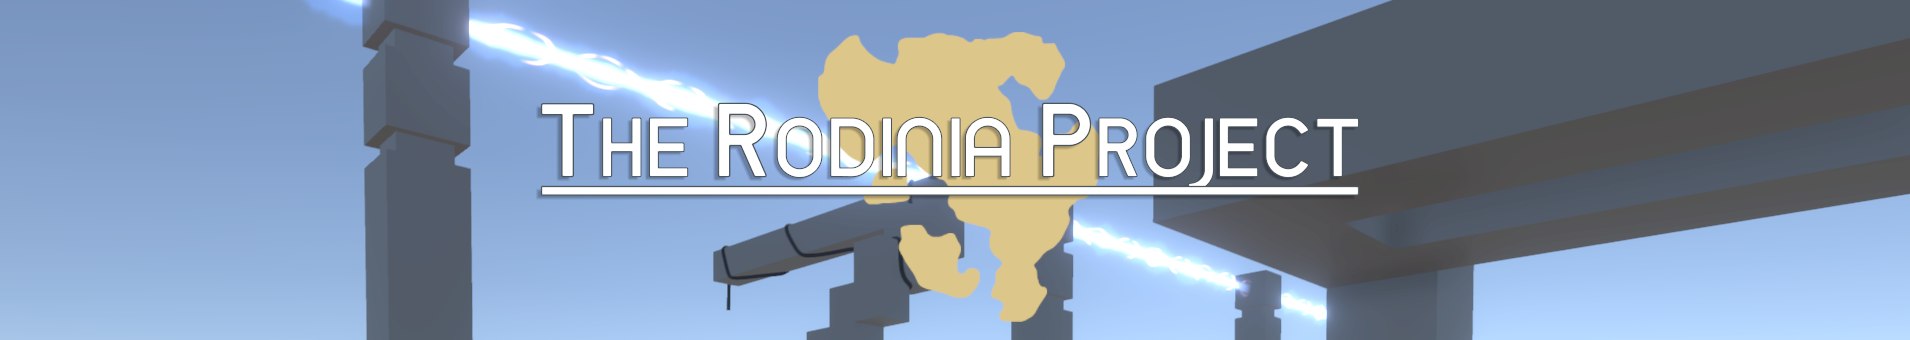 The Rodinia Project